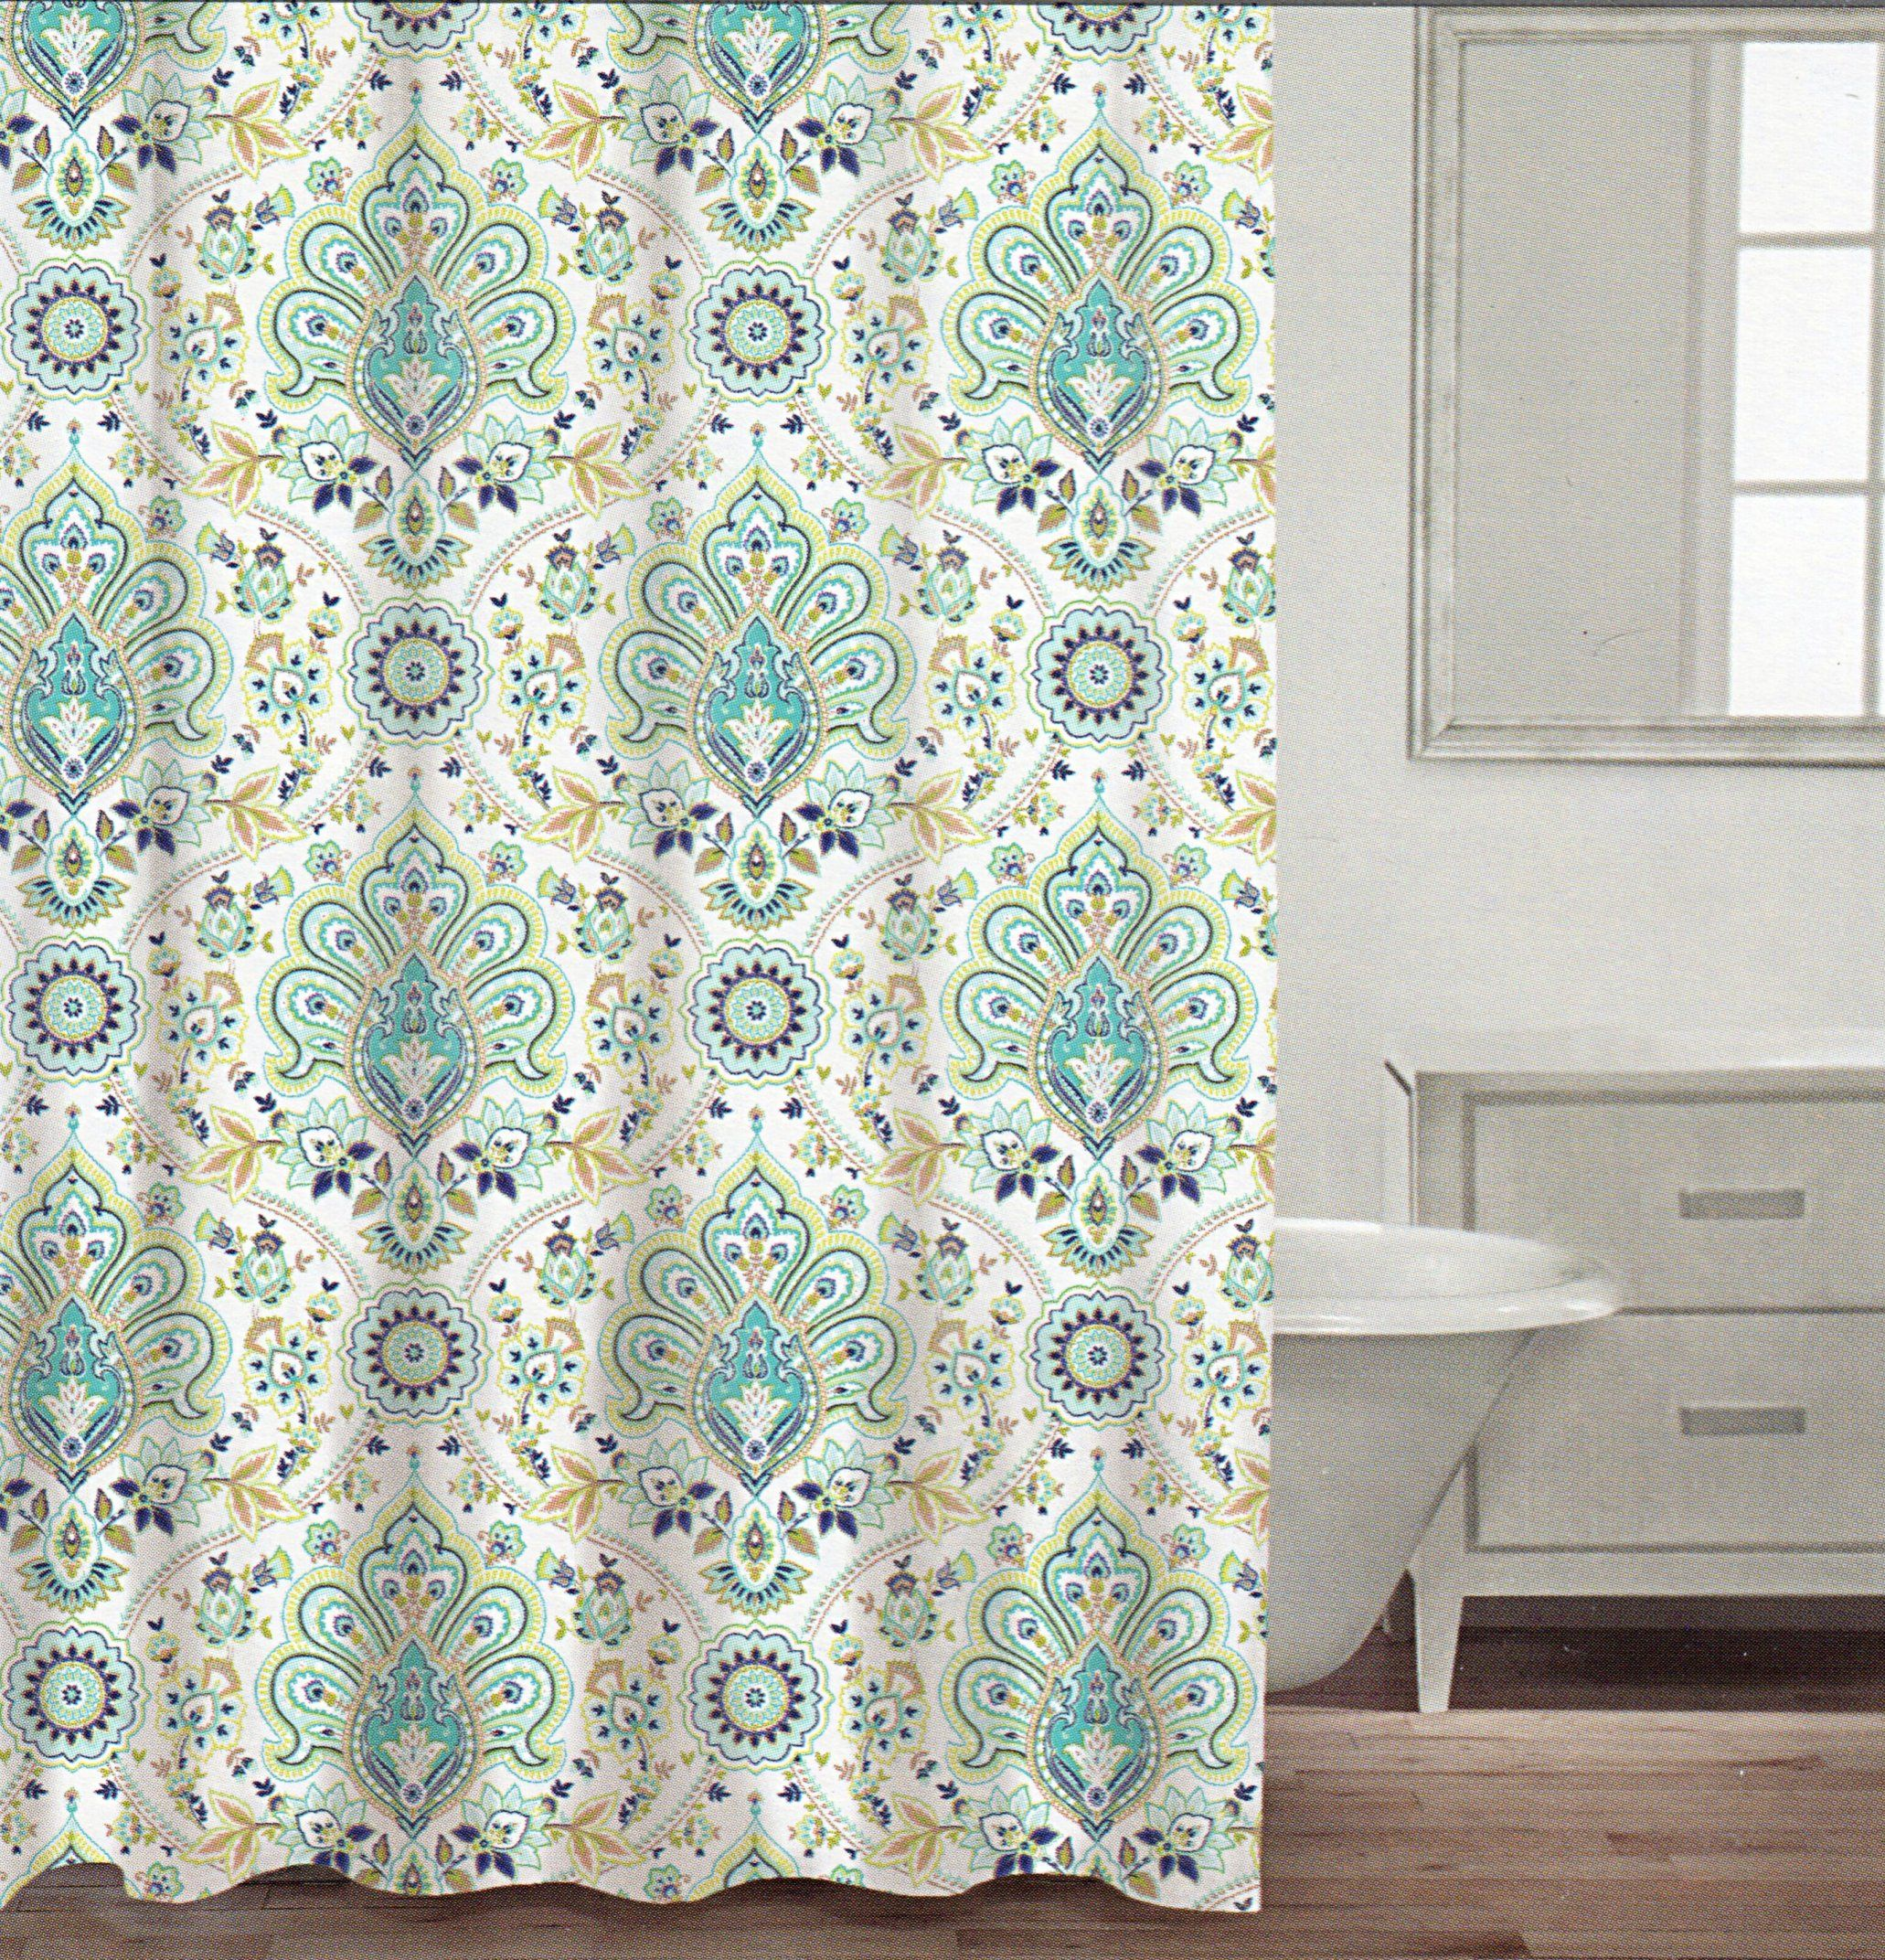 Amazon Com Caro Home 100 Cotton Shower Curtain Floral Paisley Medallions Fabric Shower Curtain White Green Shower Curtains Caro Home Fabric Shower Curtains